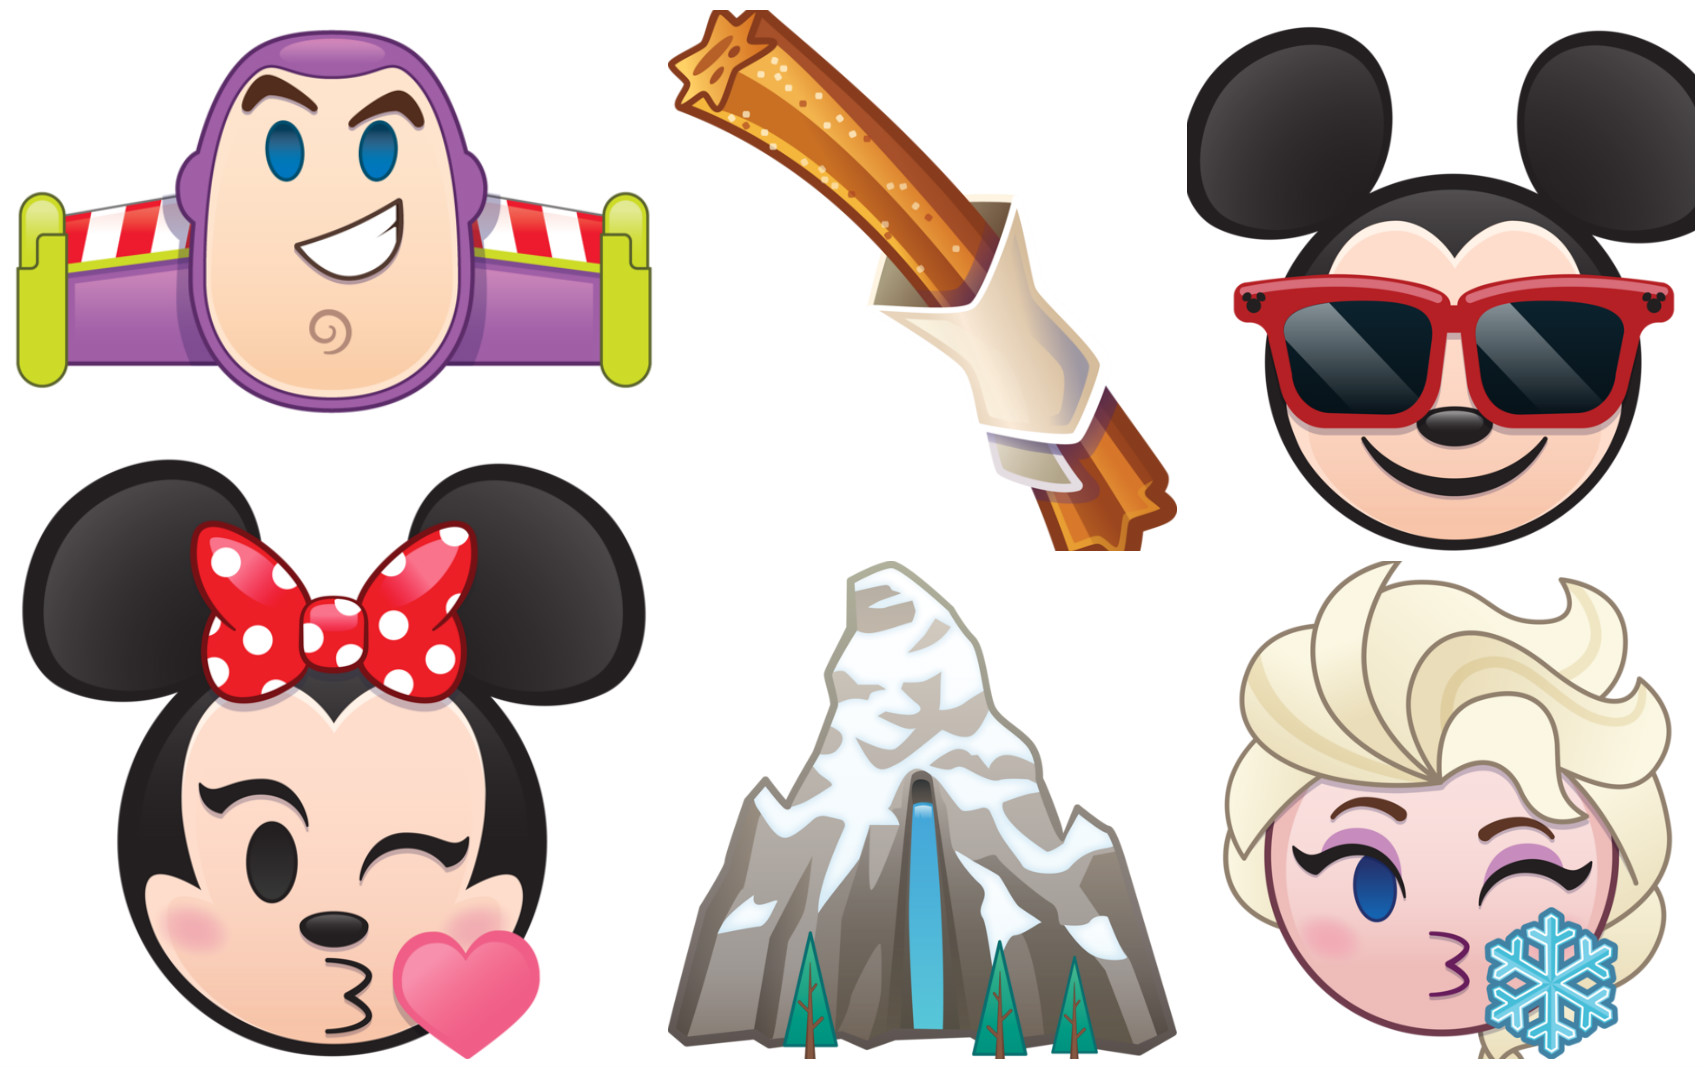 Disney's new emojis are out and there's a churro emoji because sometimes dreams come true